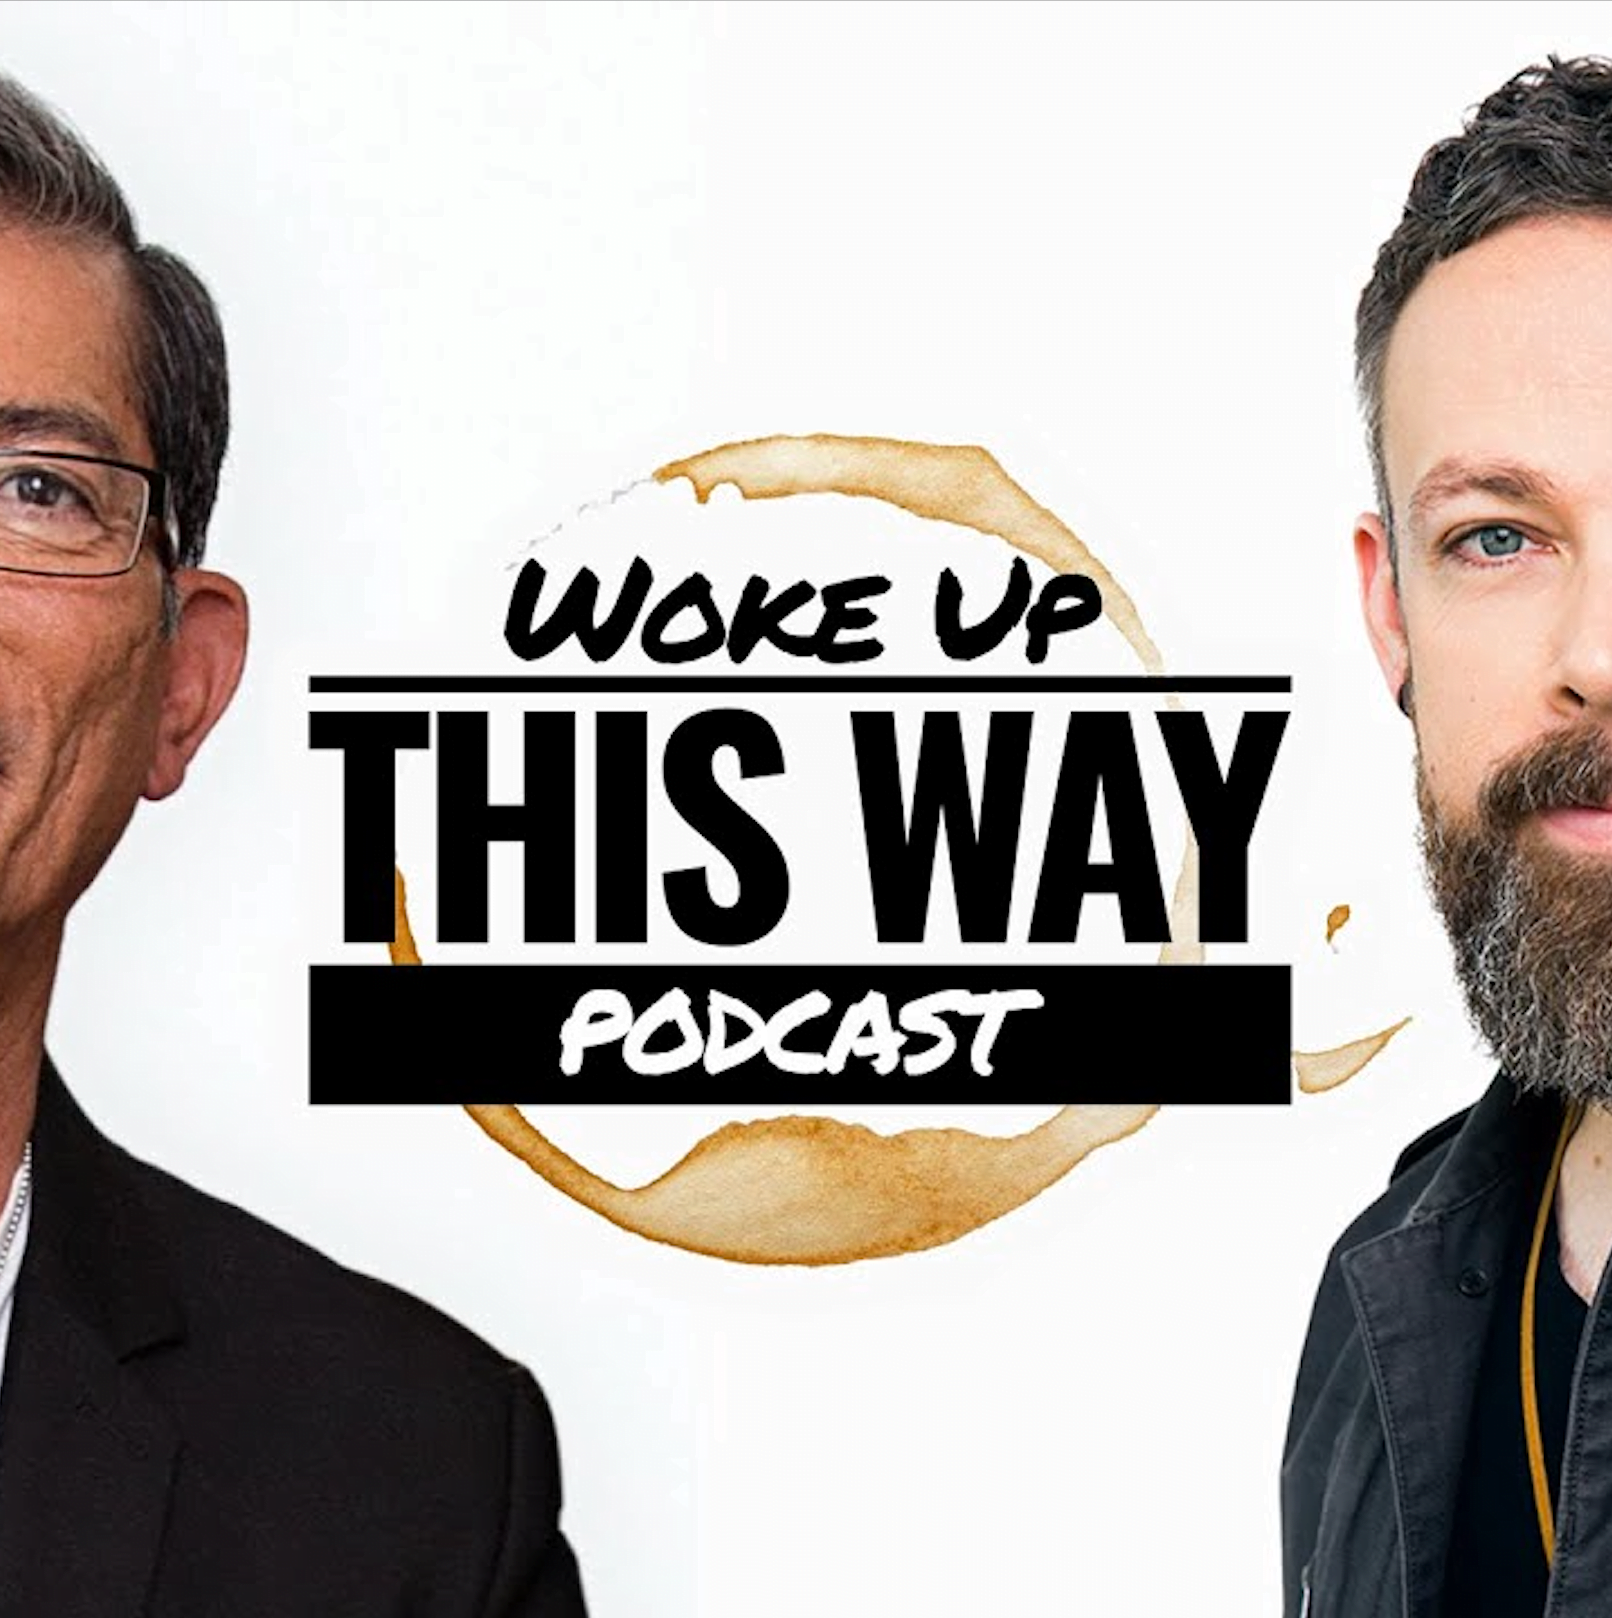 woke up this way hairdressing podcast